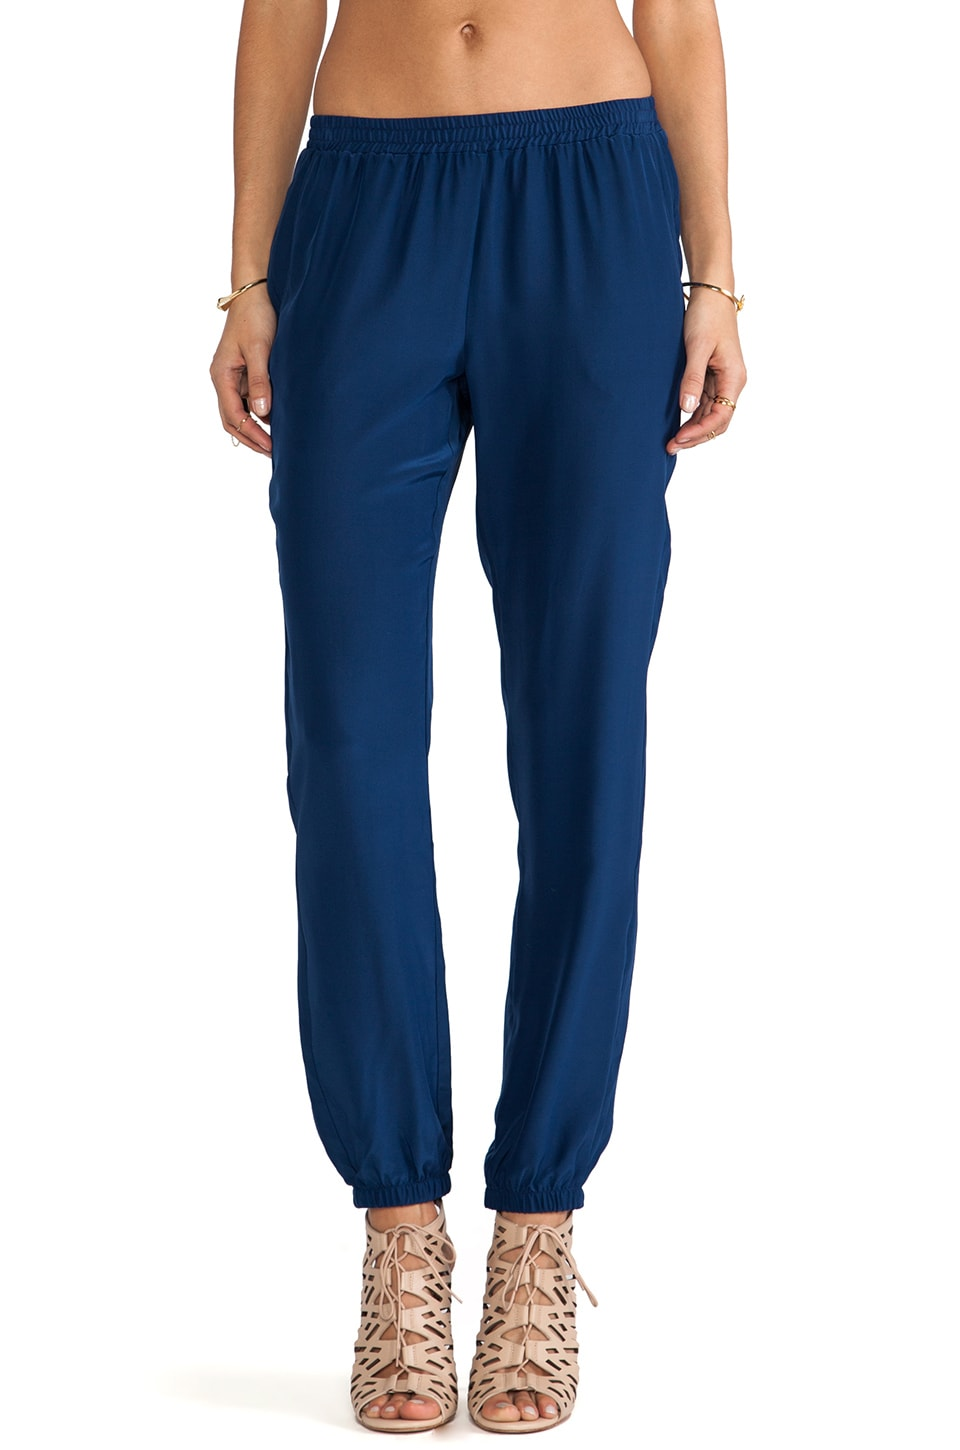 Amanda Uprichard Silk Track Pants in Emerson